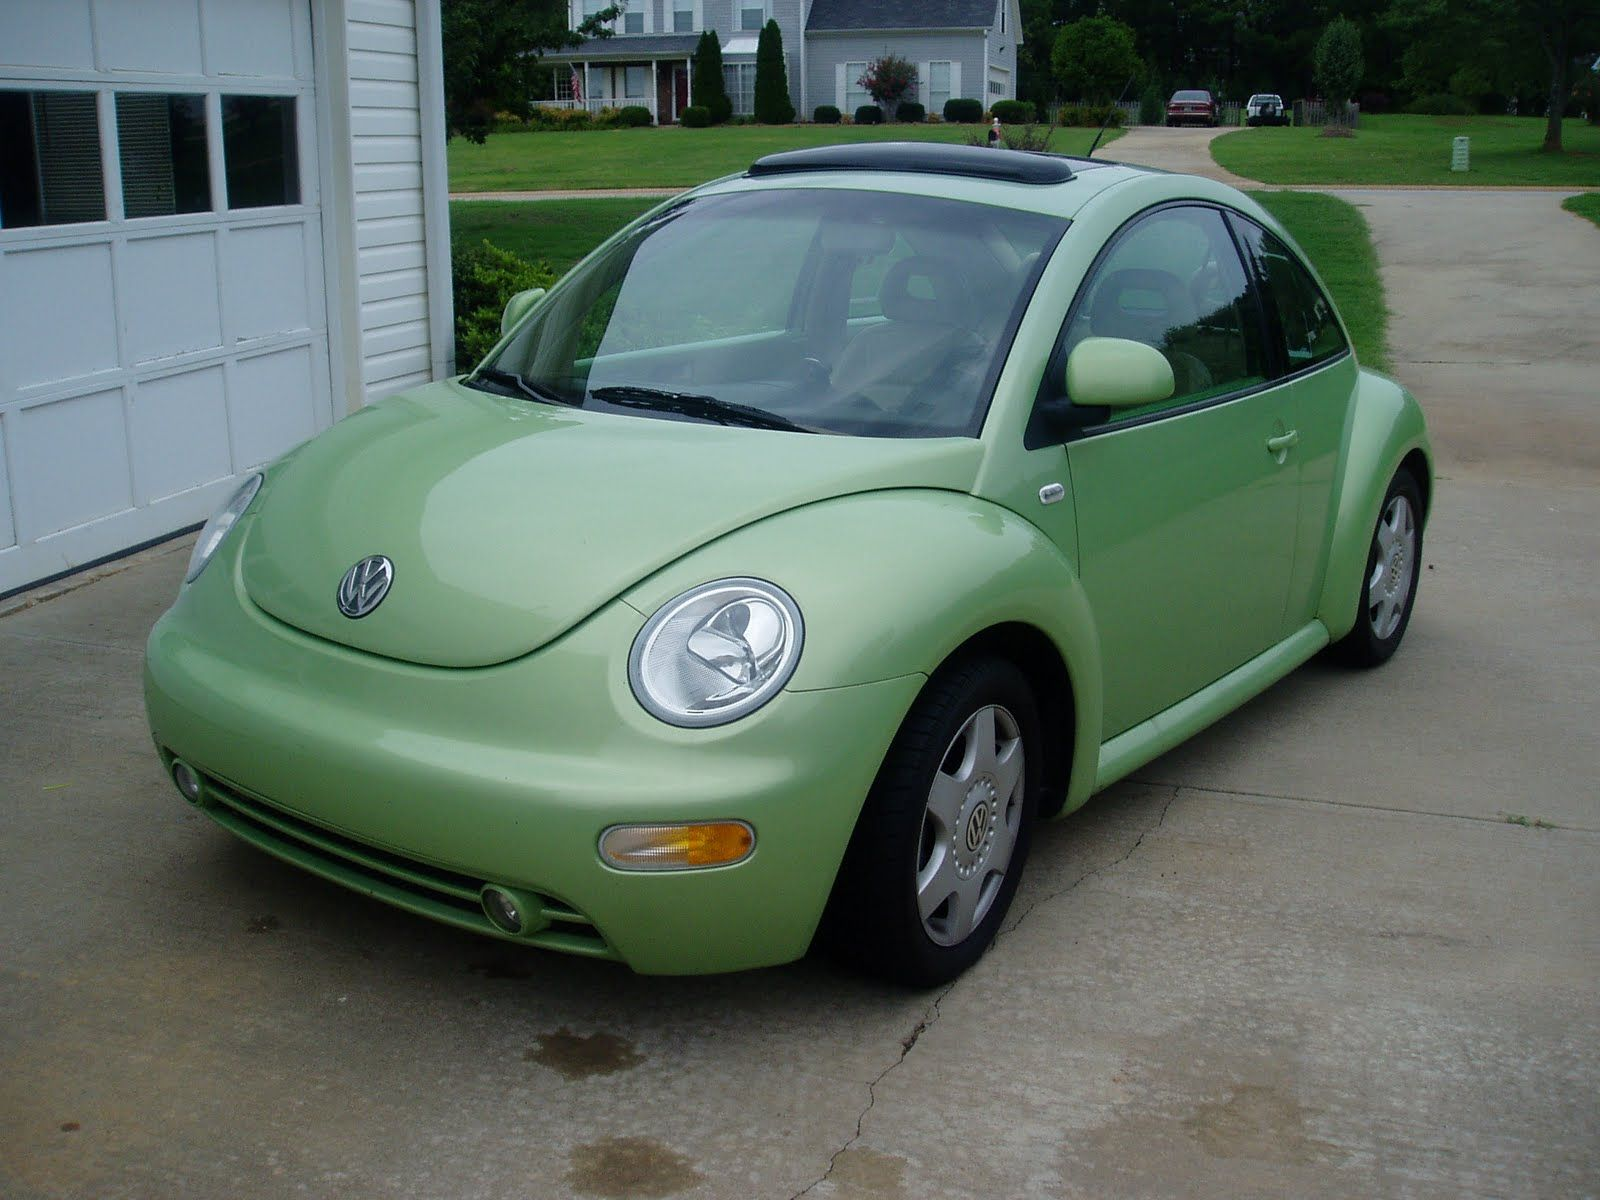 Lime Green Volkswagon Beetle Stick Shift Also Want A Sun Roof And Black Heated Leather Seats Ha